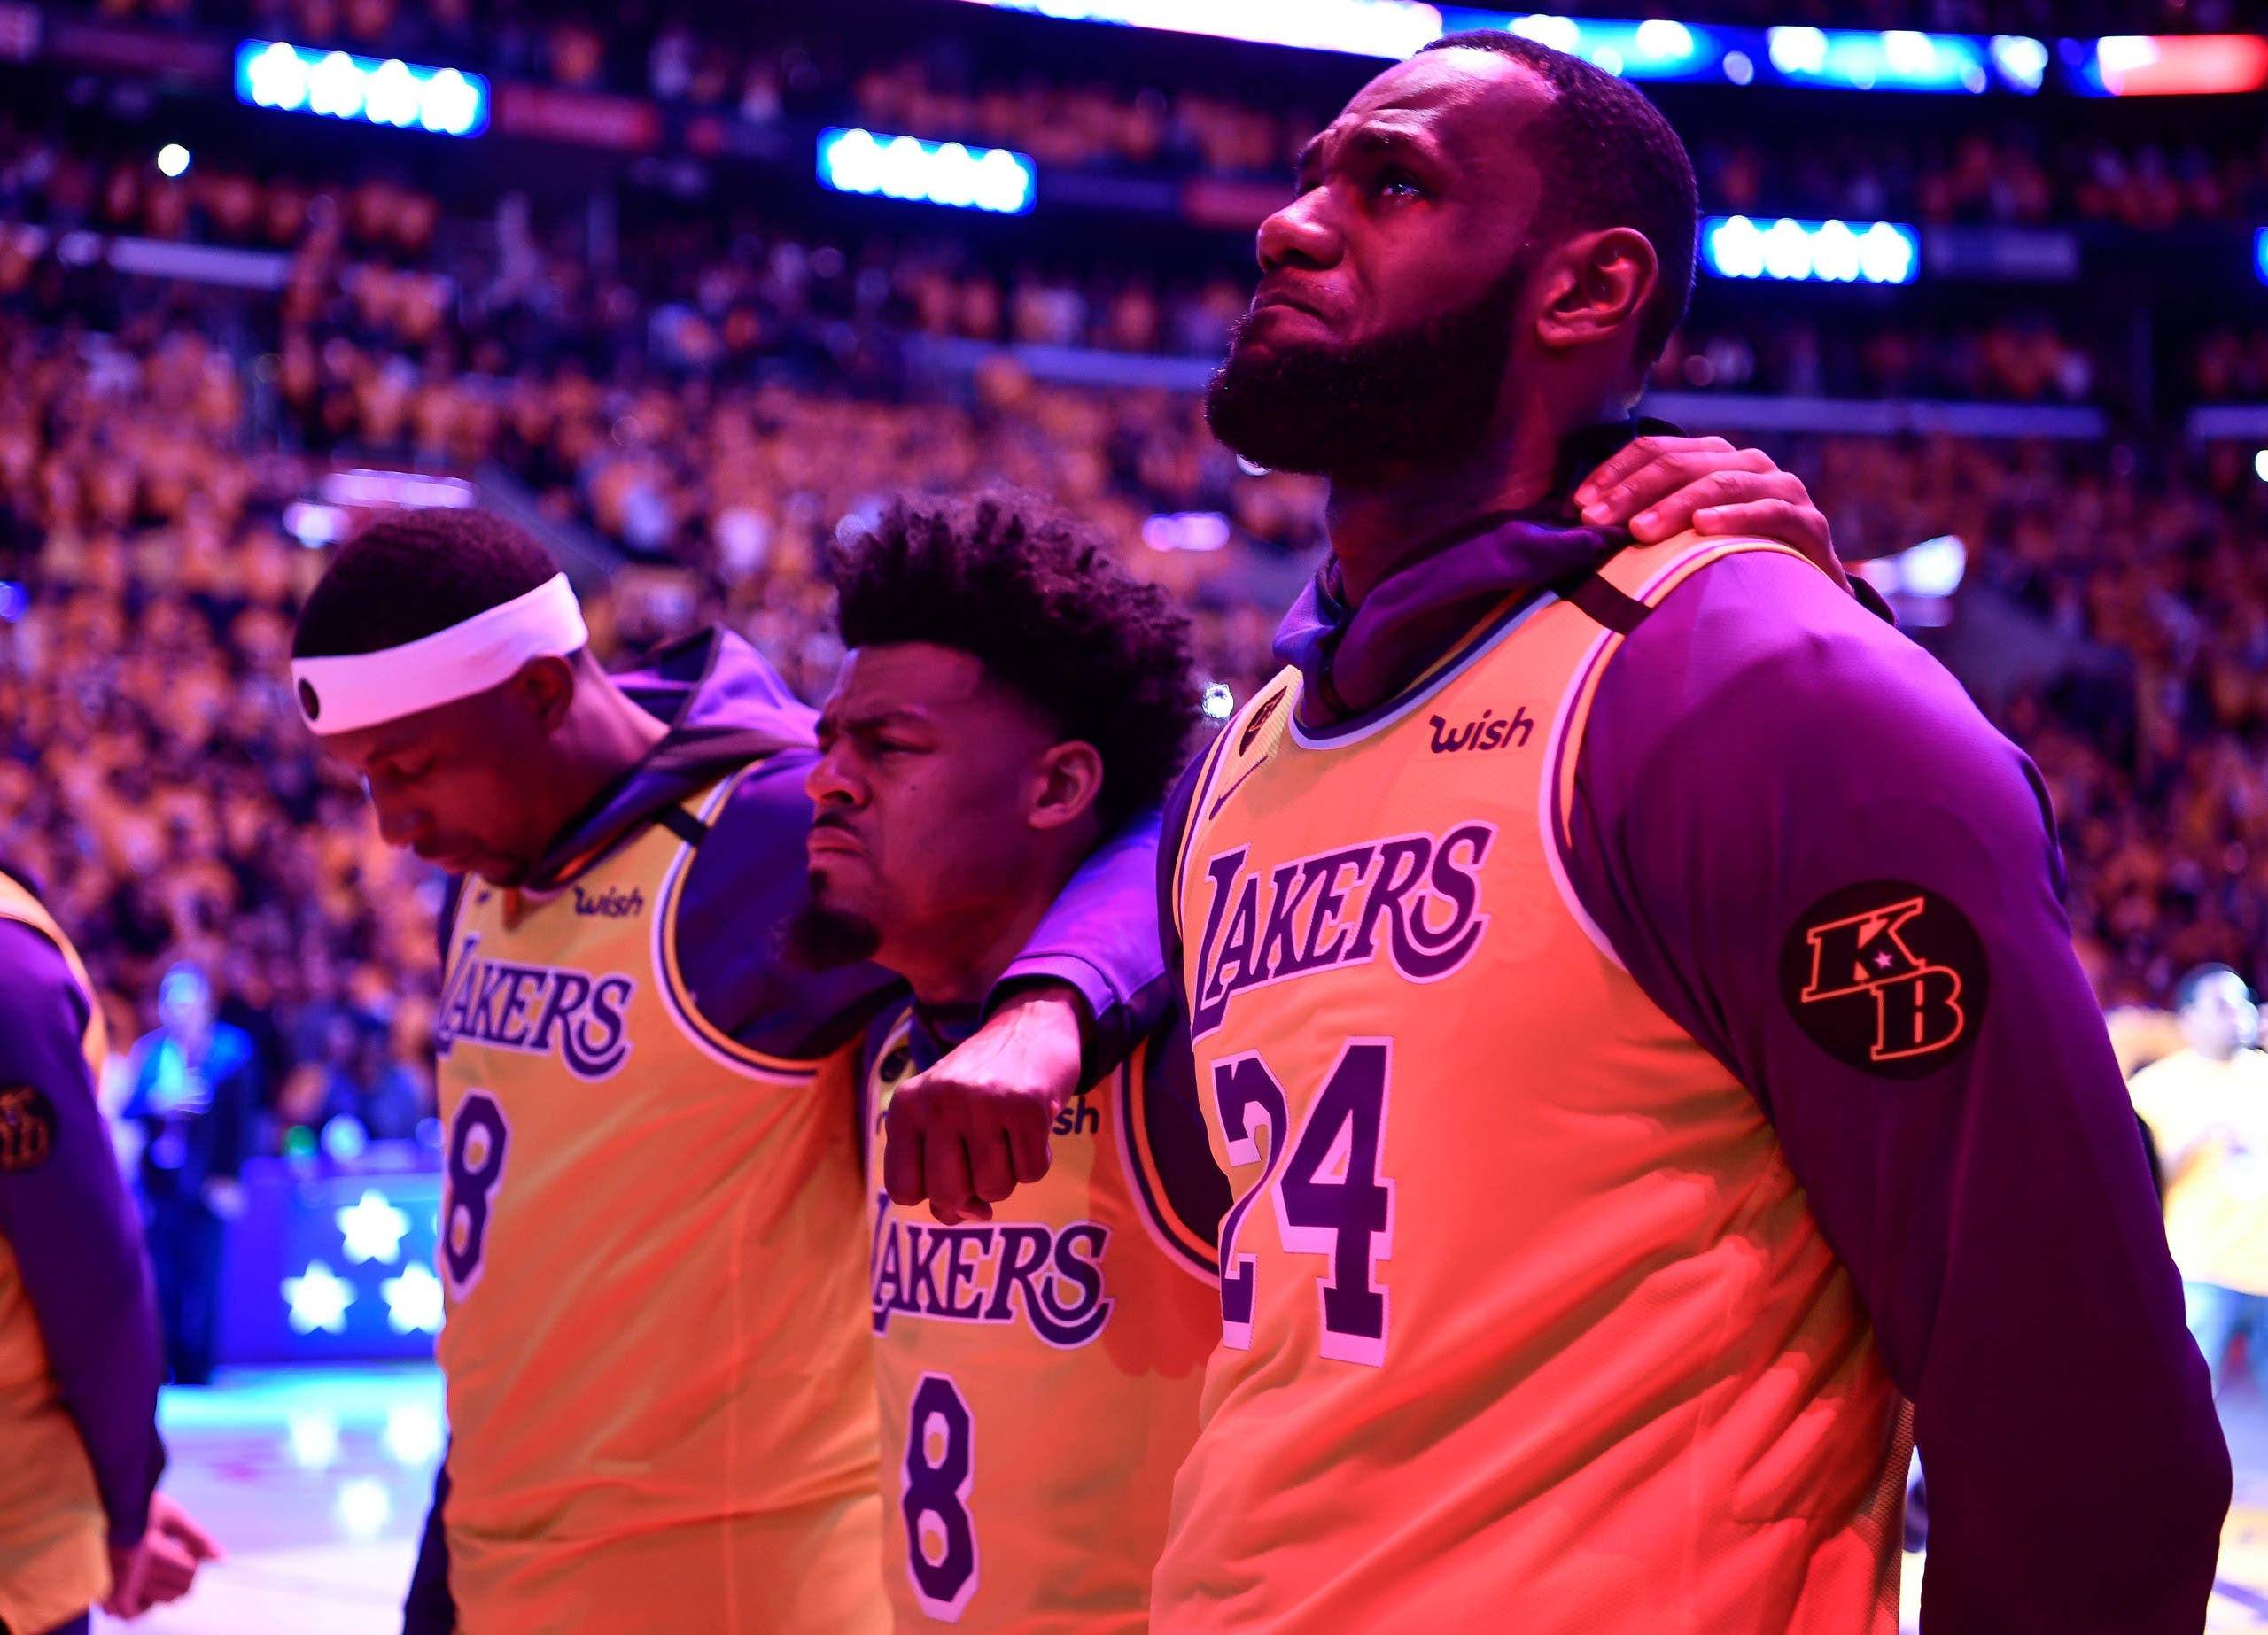 Los Angeles Lakers forward LeBron James reacts during the national anthem after a pre game tribute to Kobe Bryant before playing the Portland Trail Blazers at Staples Center. (Reuters)